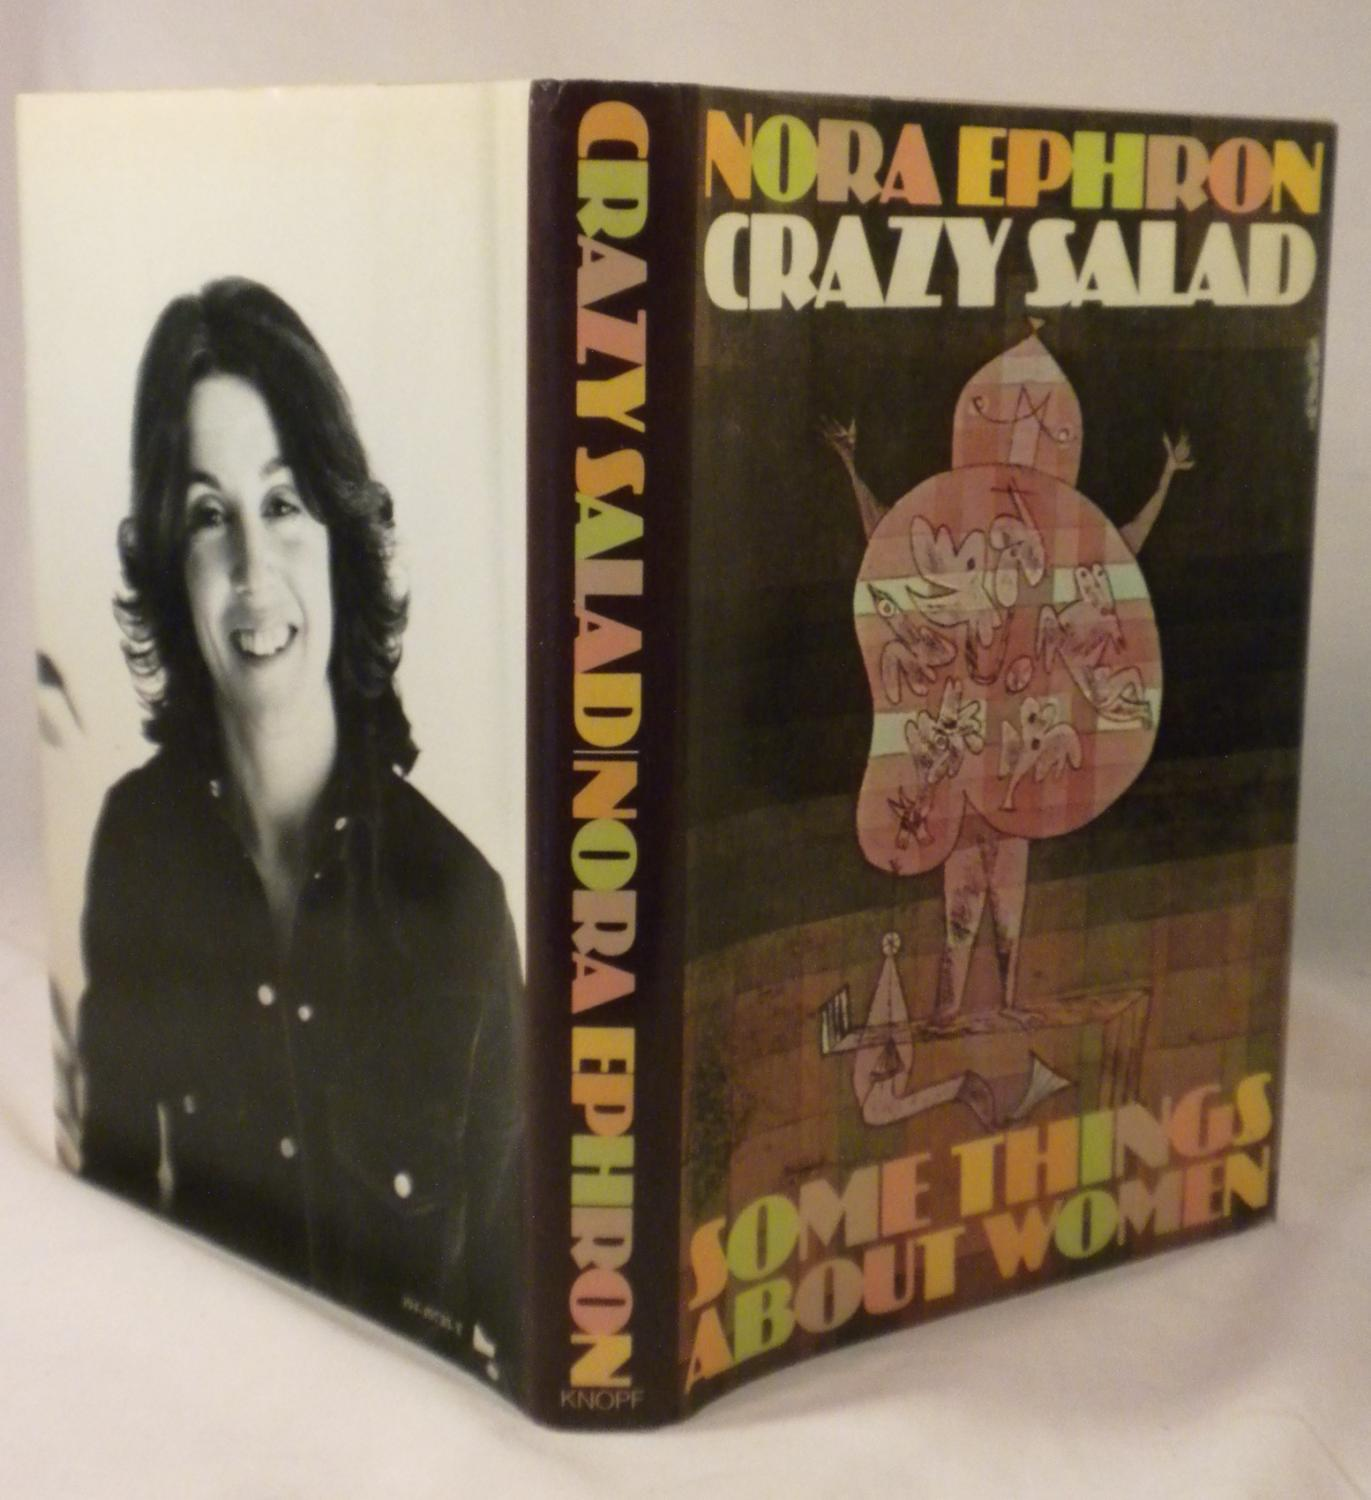 nora ephron essays crazy salad Nora ephron passed away today not only did we lose an amazing writer, thinker, journalist, storyteller, and director we lost the world's funniest feminist related: words as truth: the.